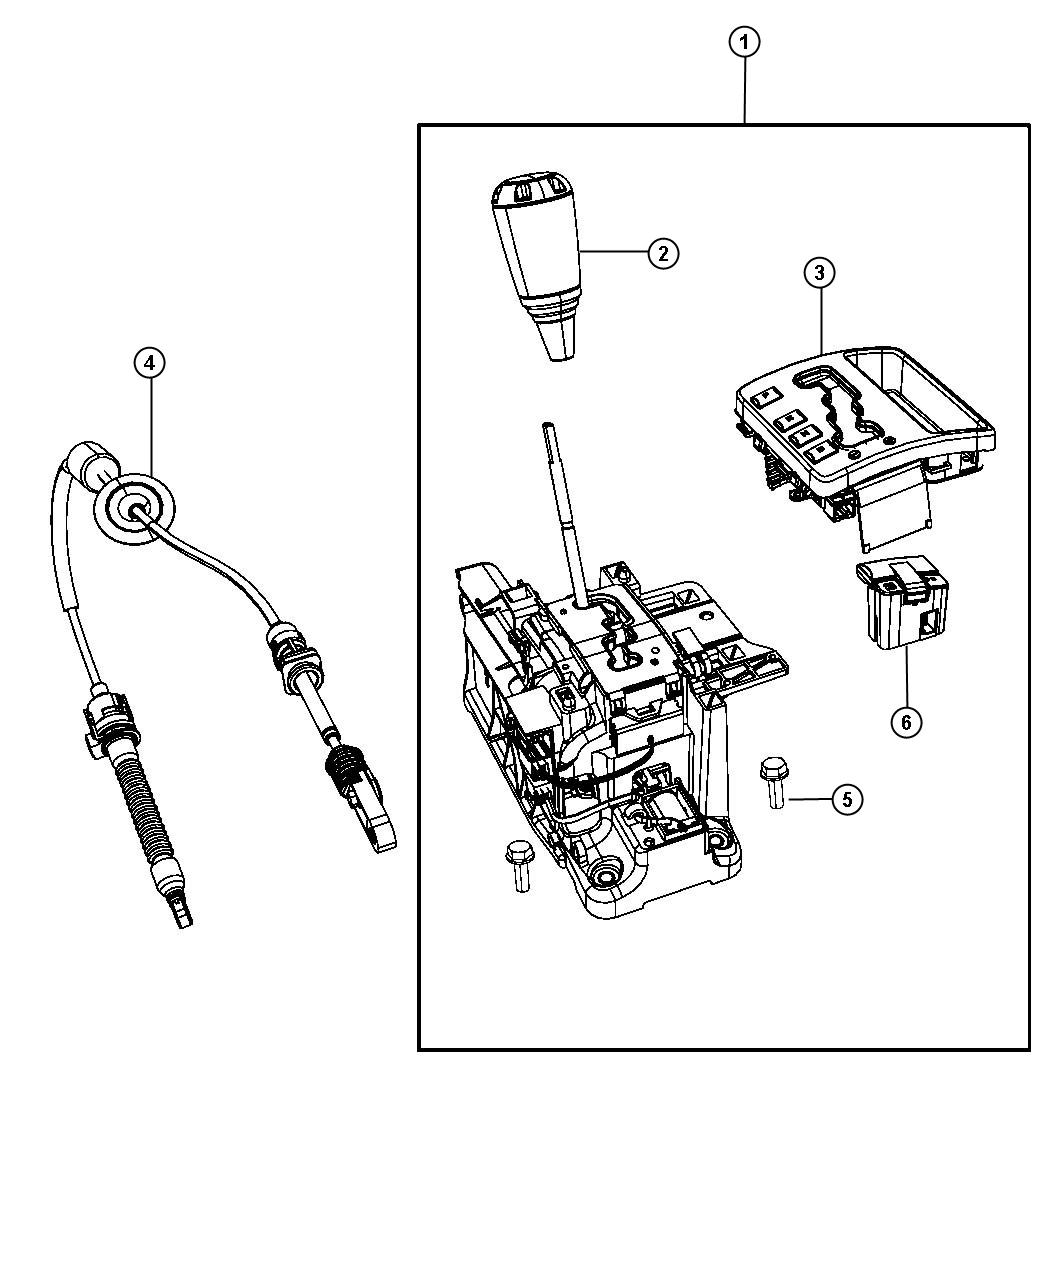 Jeep Grand Cherokee Used For Housing And Lever Shifter